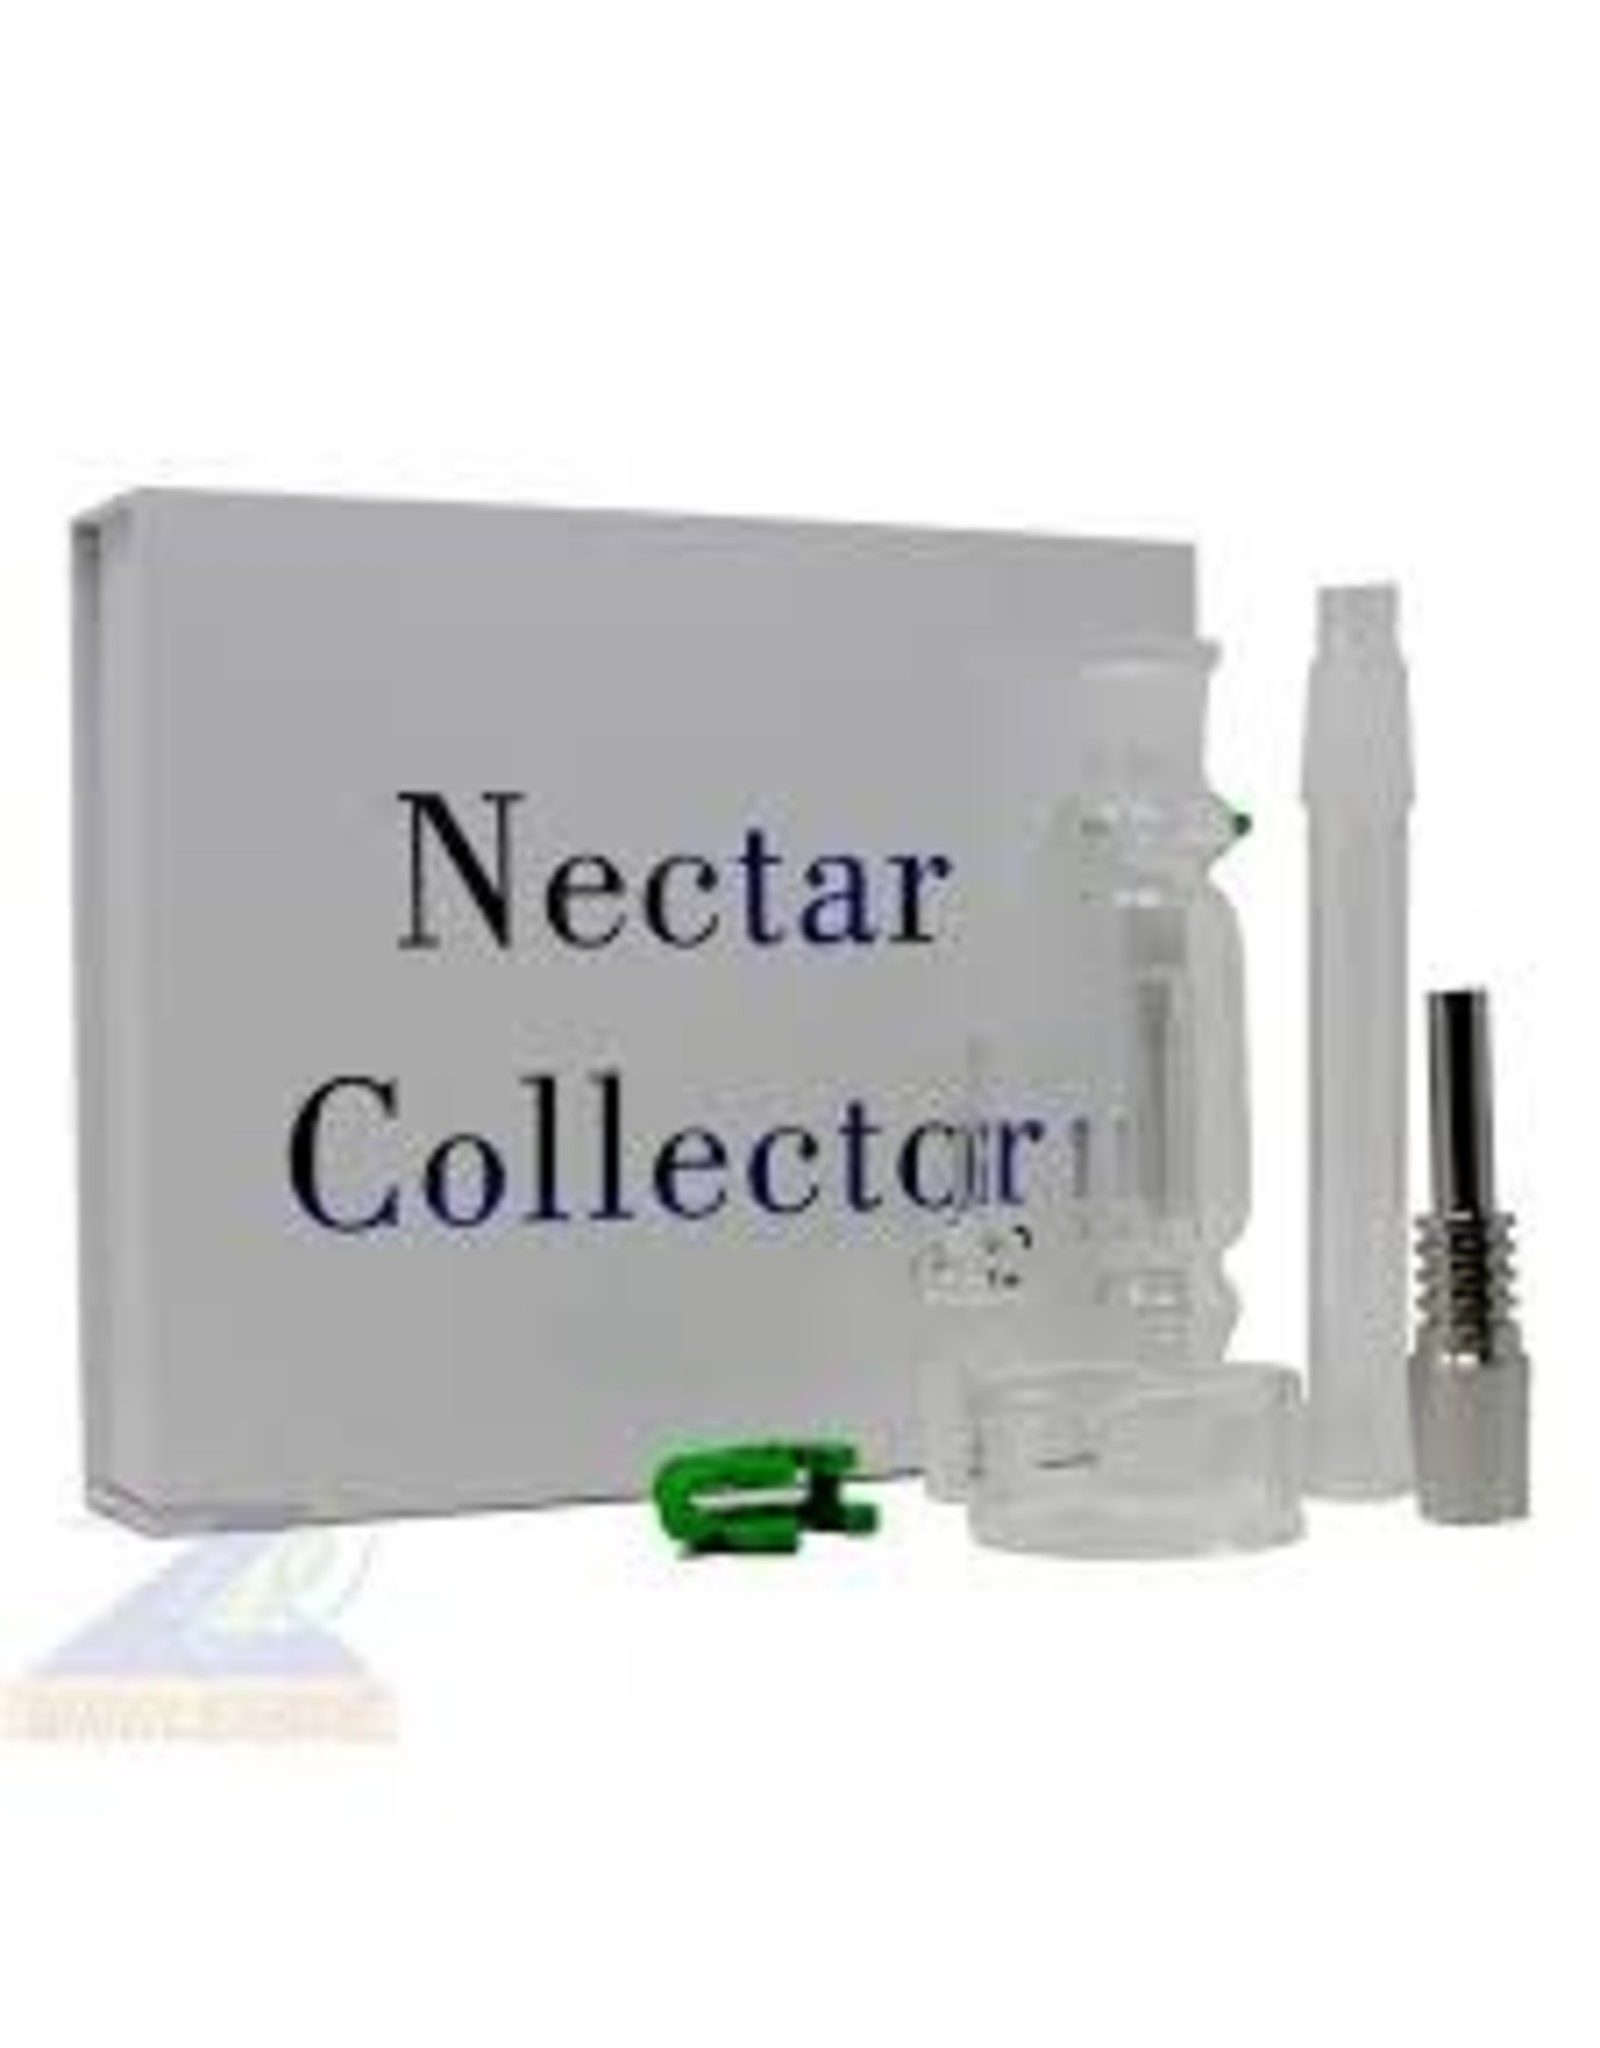 2 IN 1 NECTAR COLLECTOR & BUBBLER